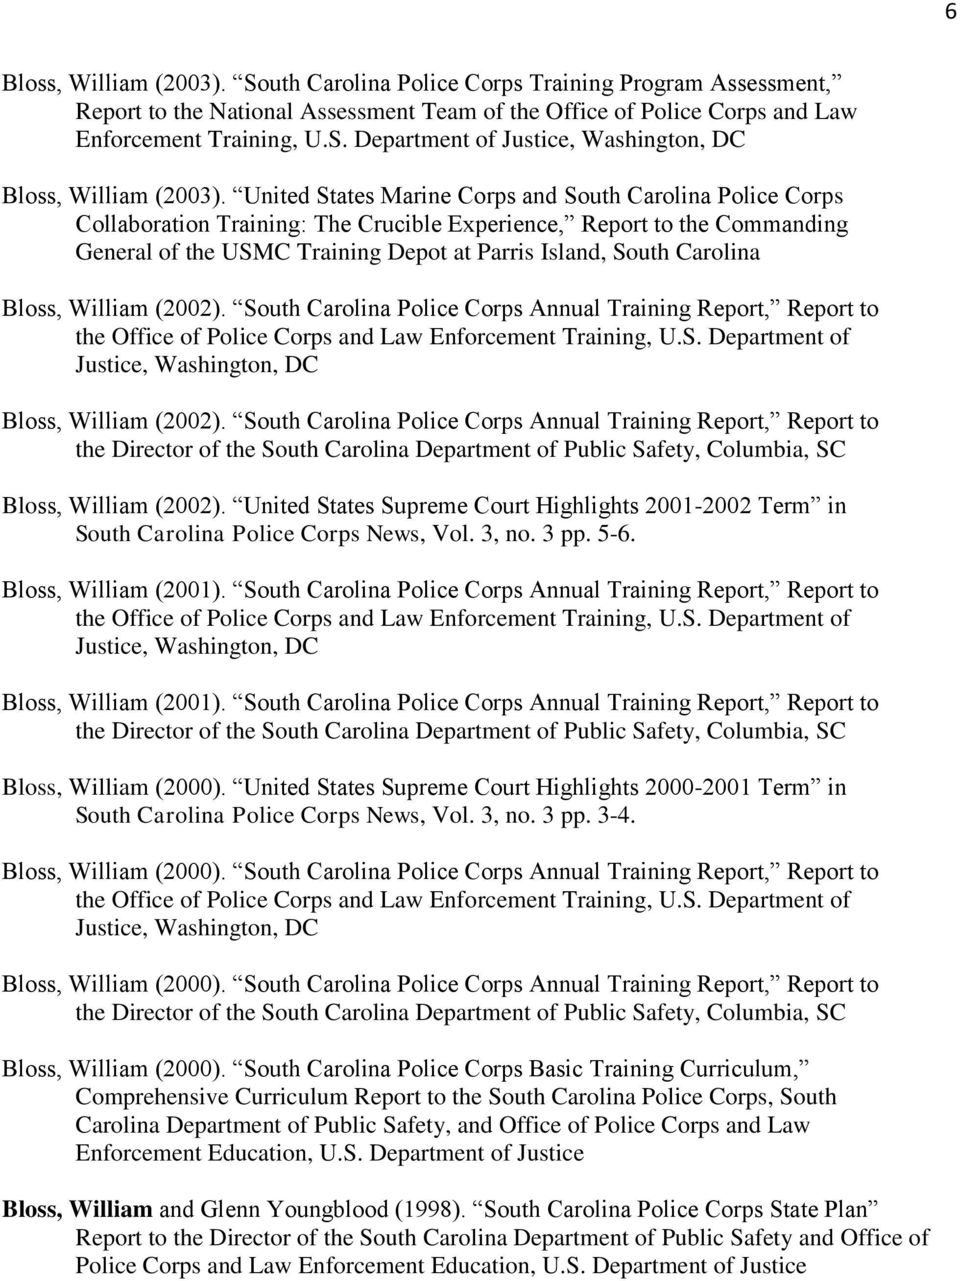 Carolina Bloss, William (2002). South Carolina Police Corps Annual Training Report, Report to the Office of Police Corps and Law Enforcement Training, U.S. Department of Justice, Washington, DC Bloss, William (2002).